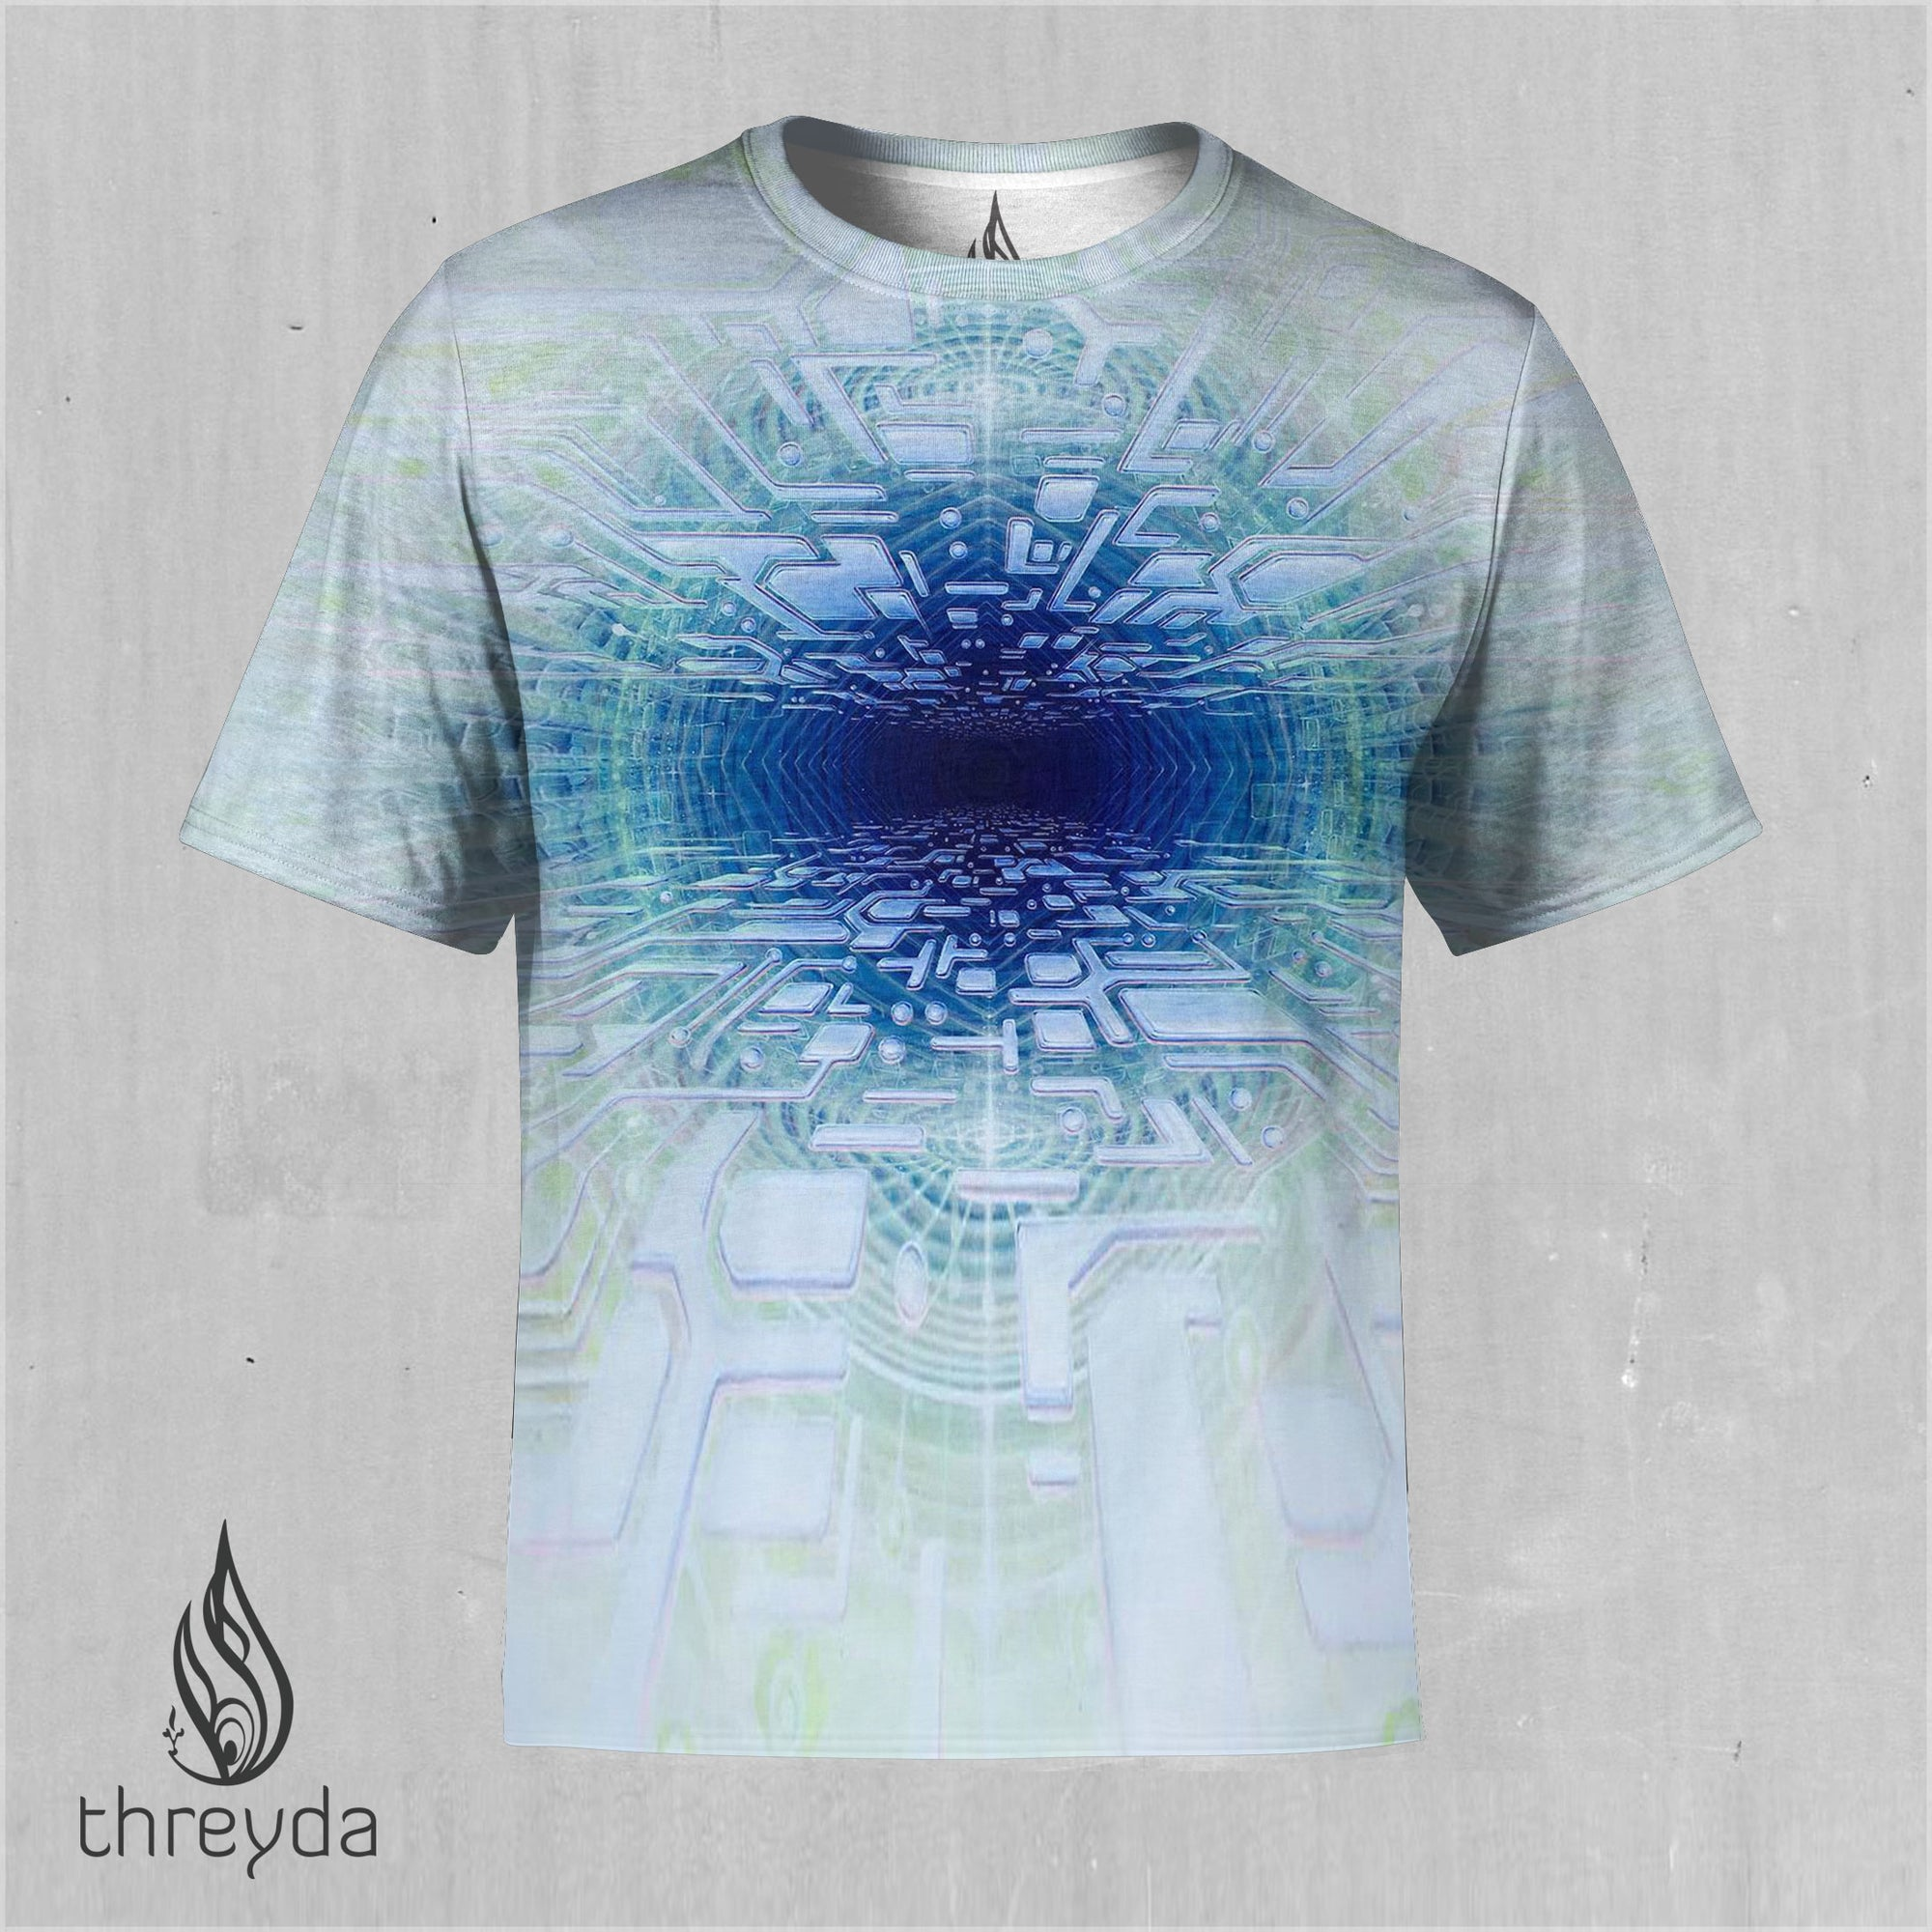 6o1 Sublimation Tee by Kent Baltutat